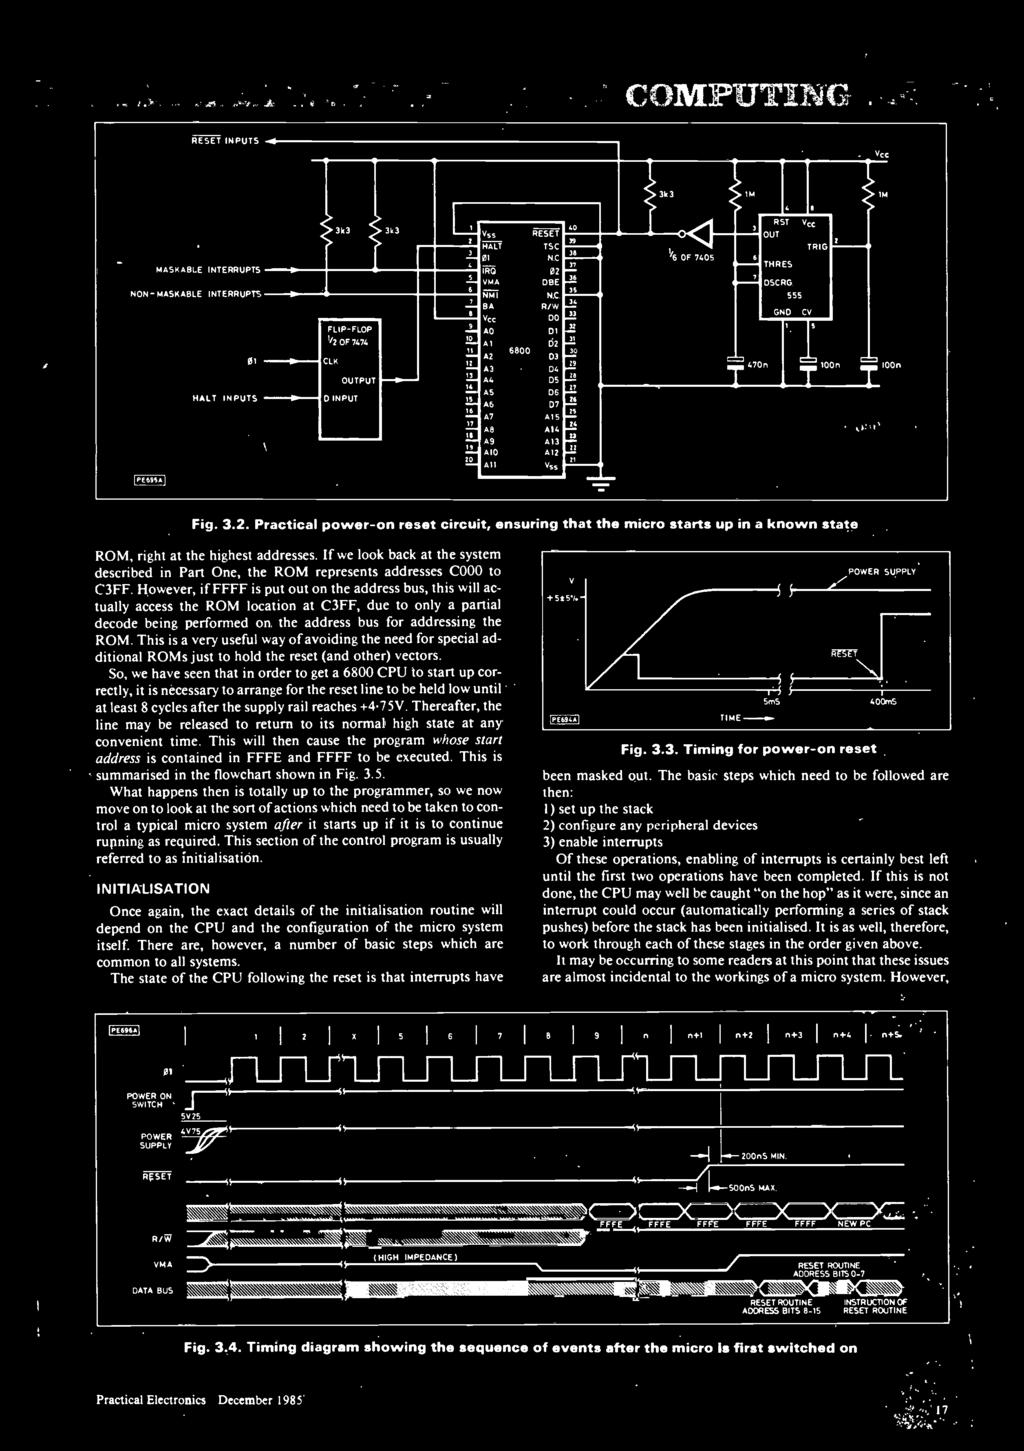 Robotics Review Industry Notebook Bazaar Pdf Long Time Periodically Moreover 555 M Dimmer Circuit Also Ic Timer Thres Dscrg Gnd C 470n 100n Fig 32 Practical Power On